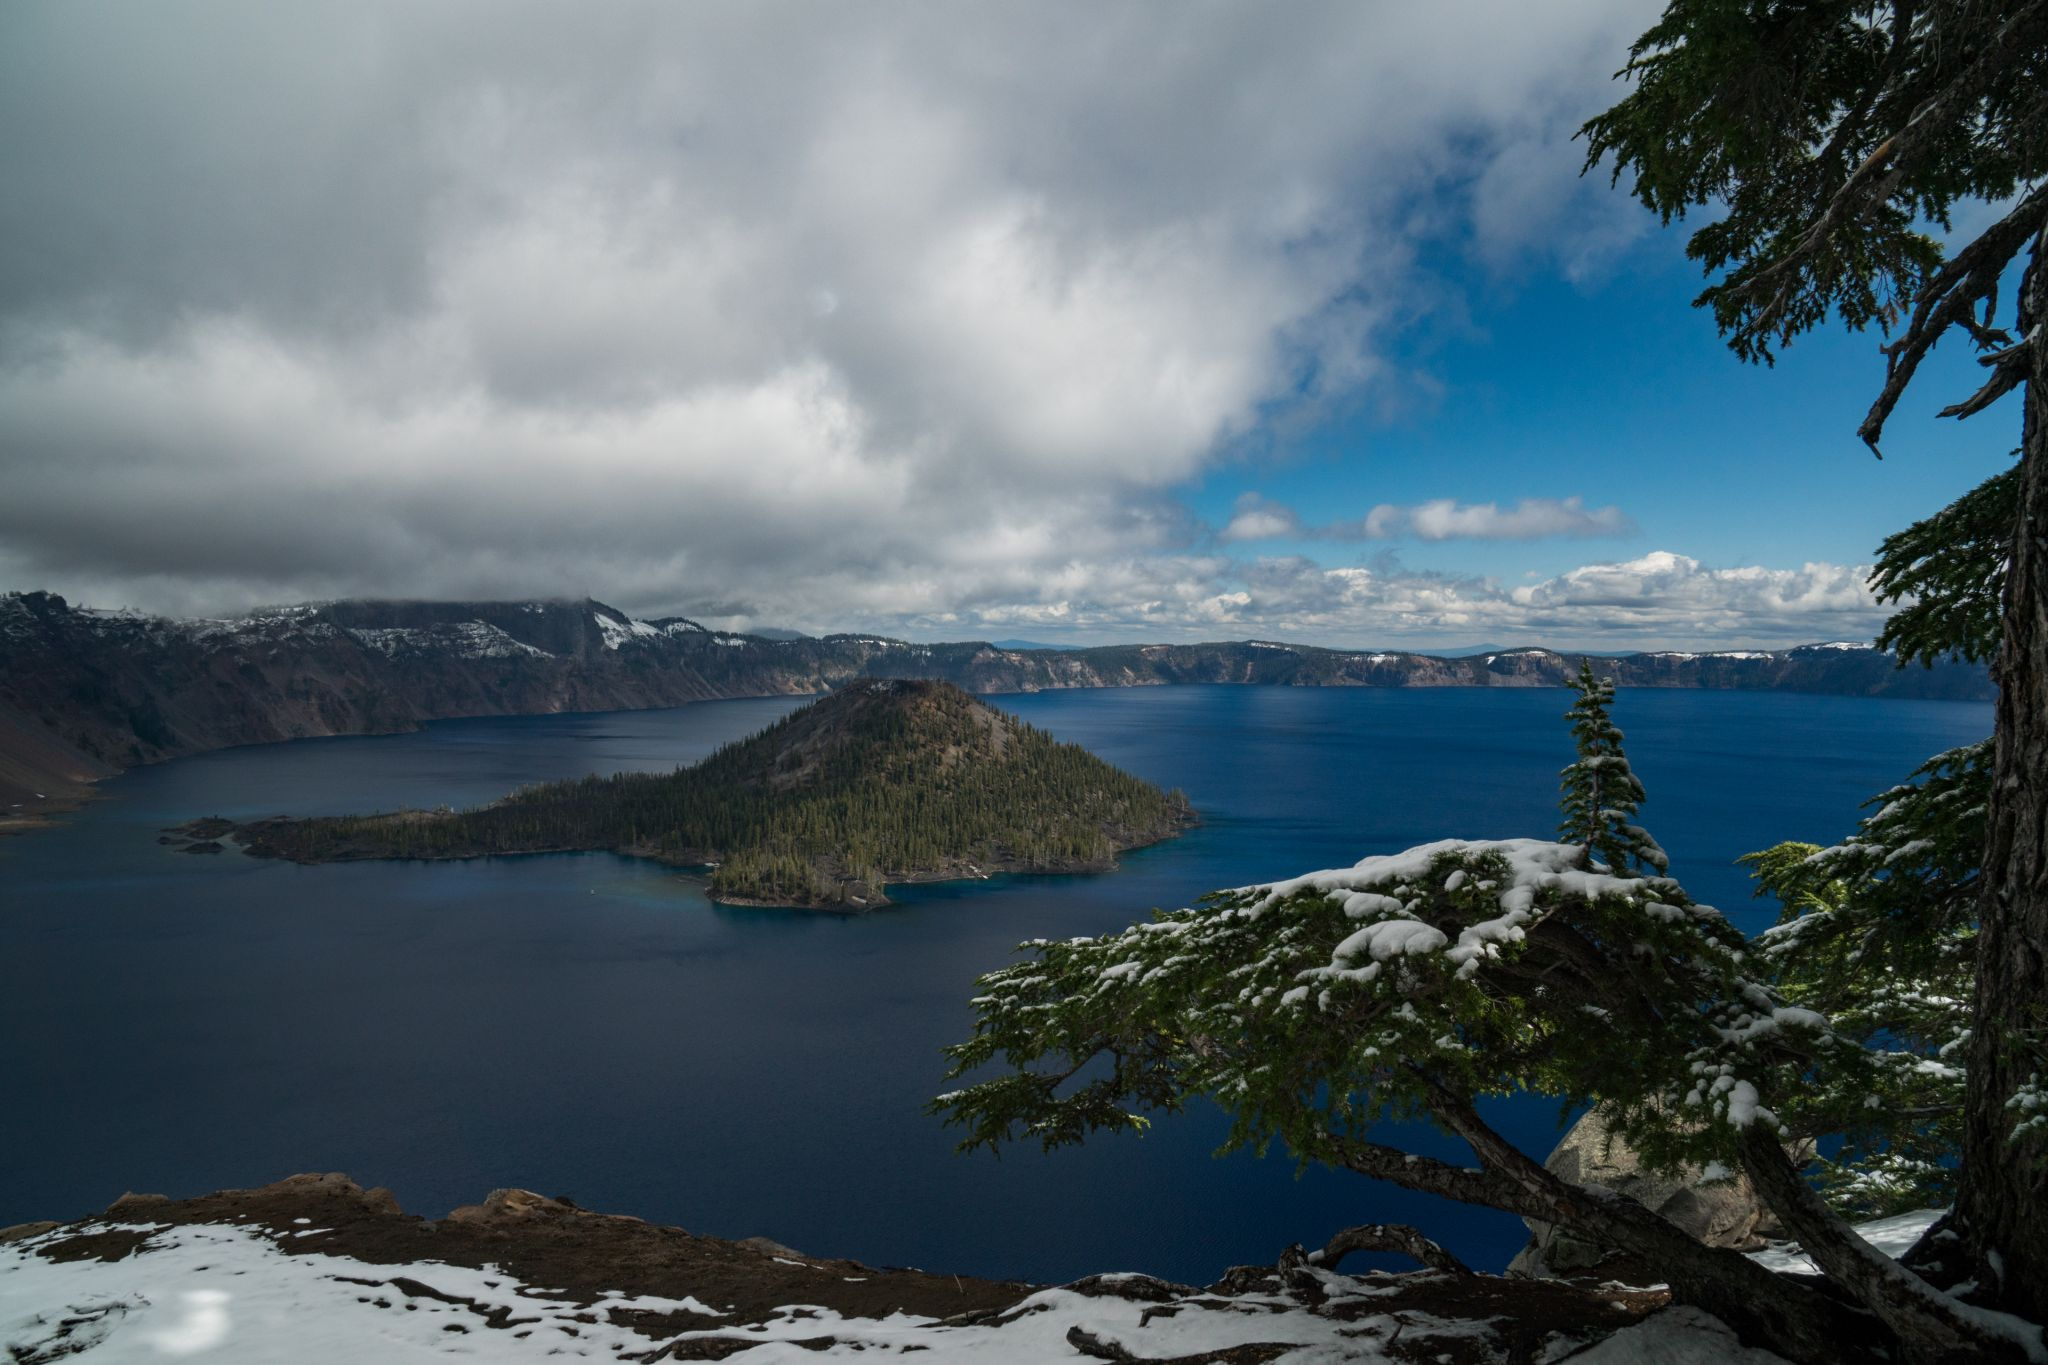 Crater Lake - Discovery Point, USA